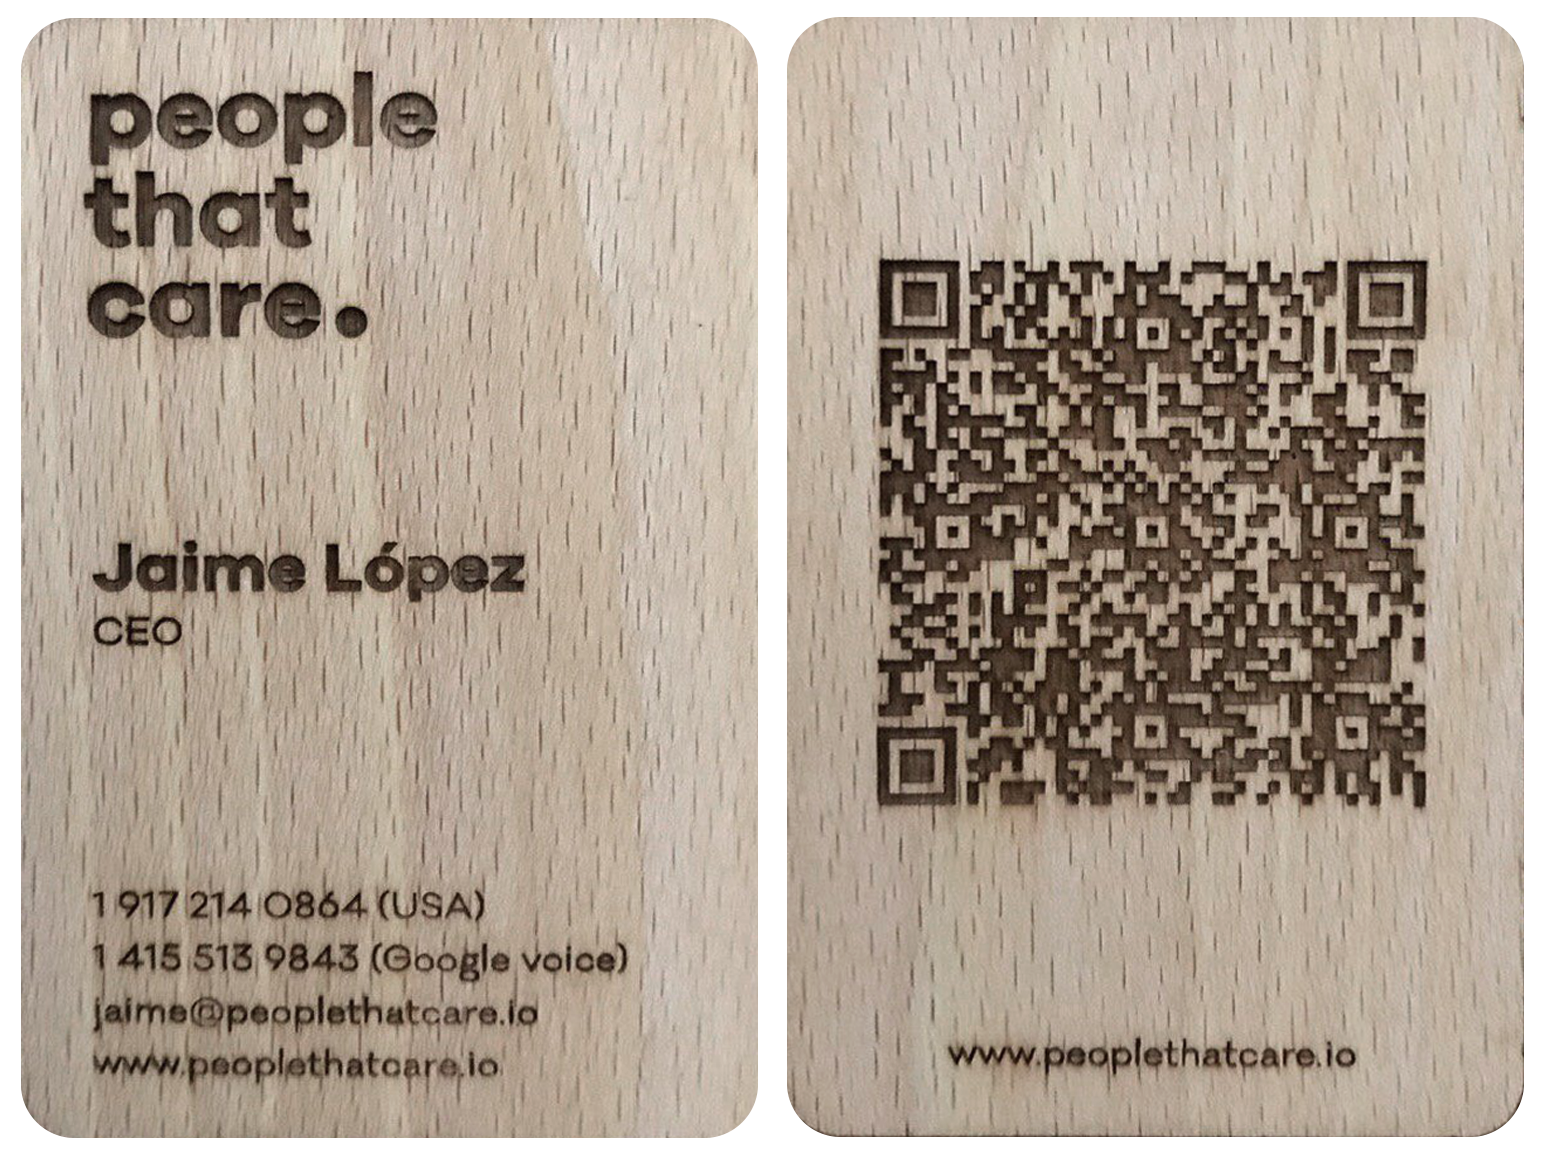 People That Care - Business card, contact